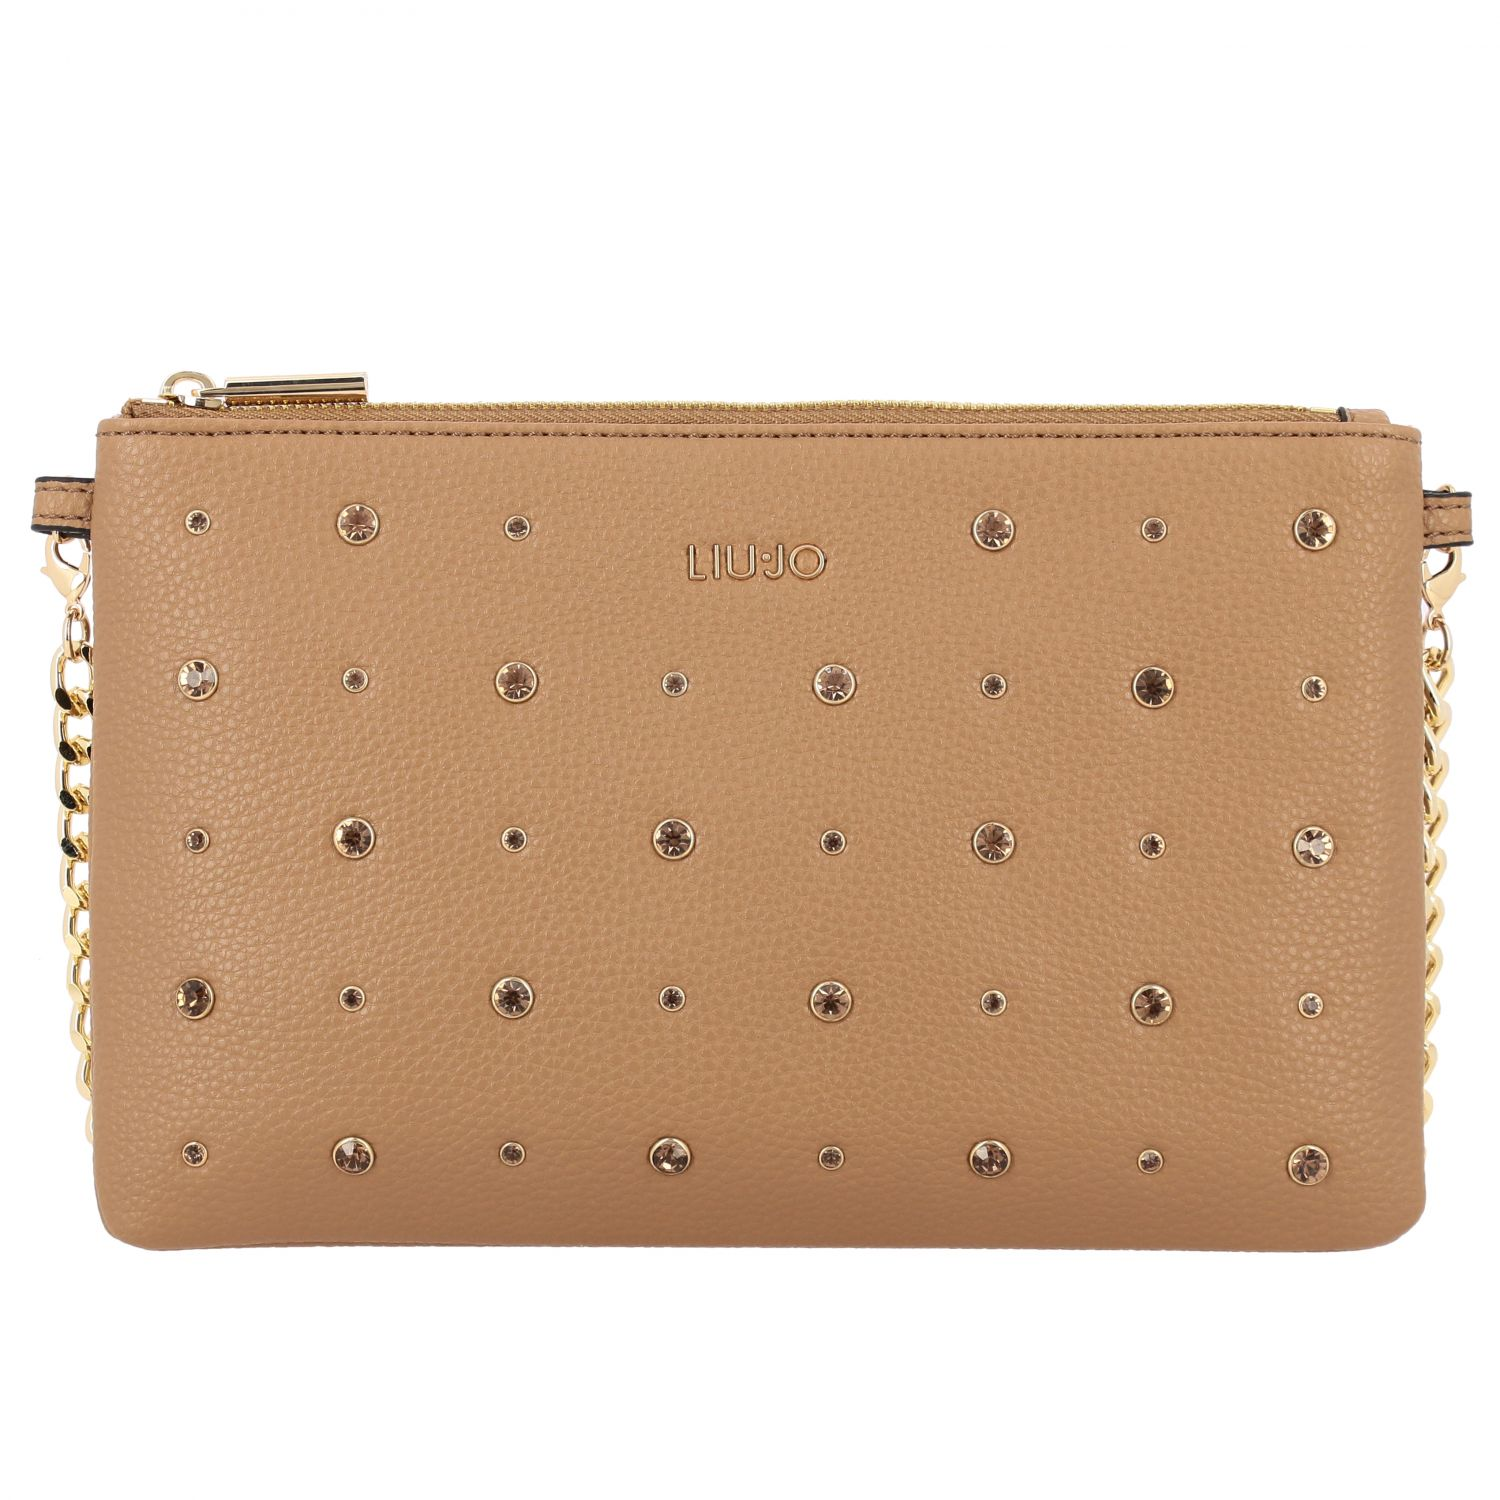 Liu Jo clutch in synthetic leather with all-over rhinestones camel 1